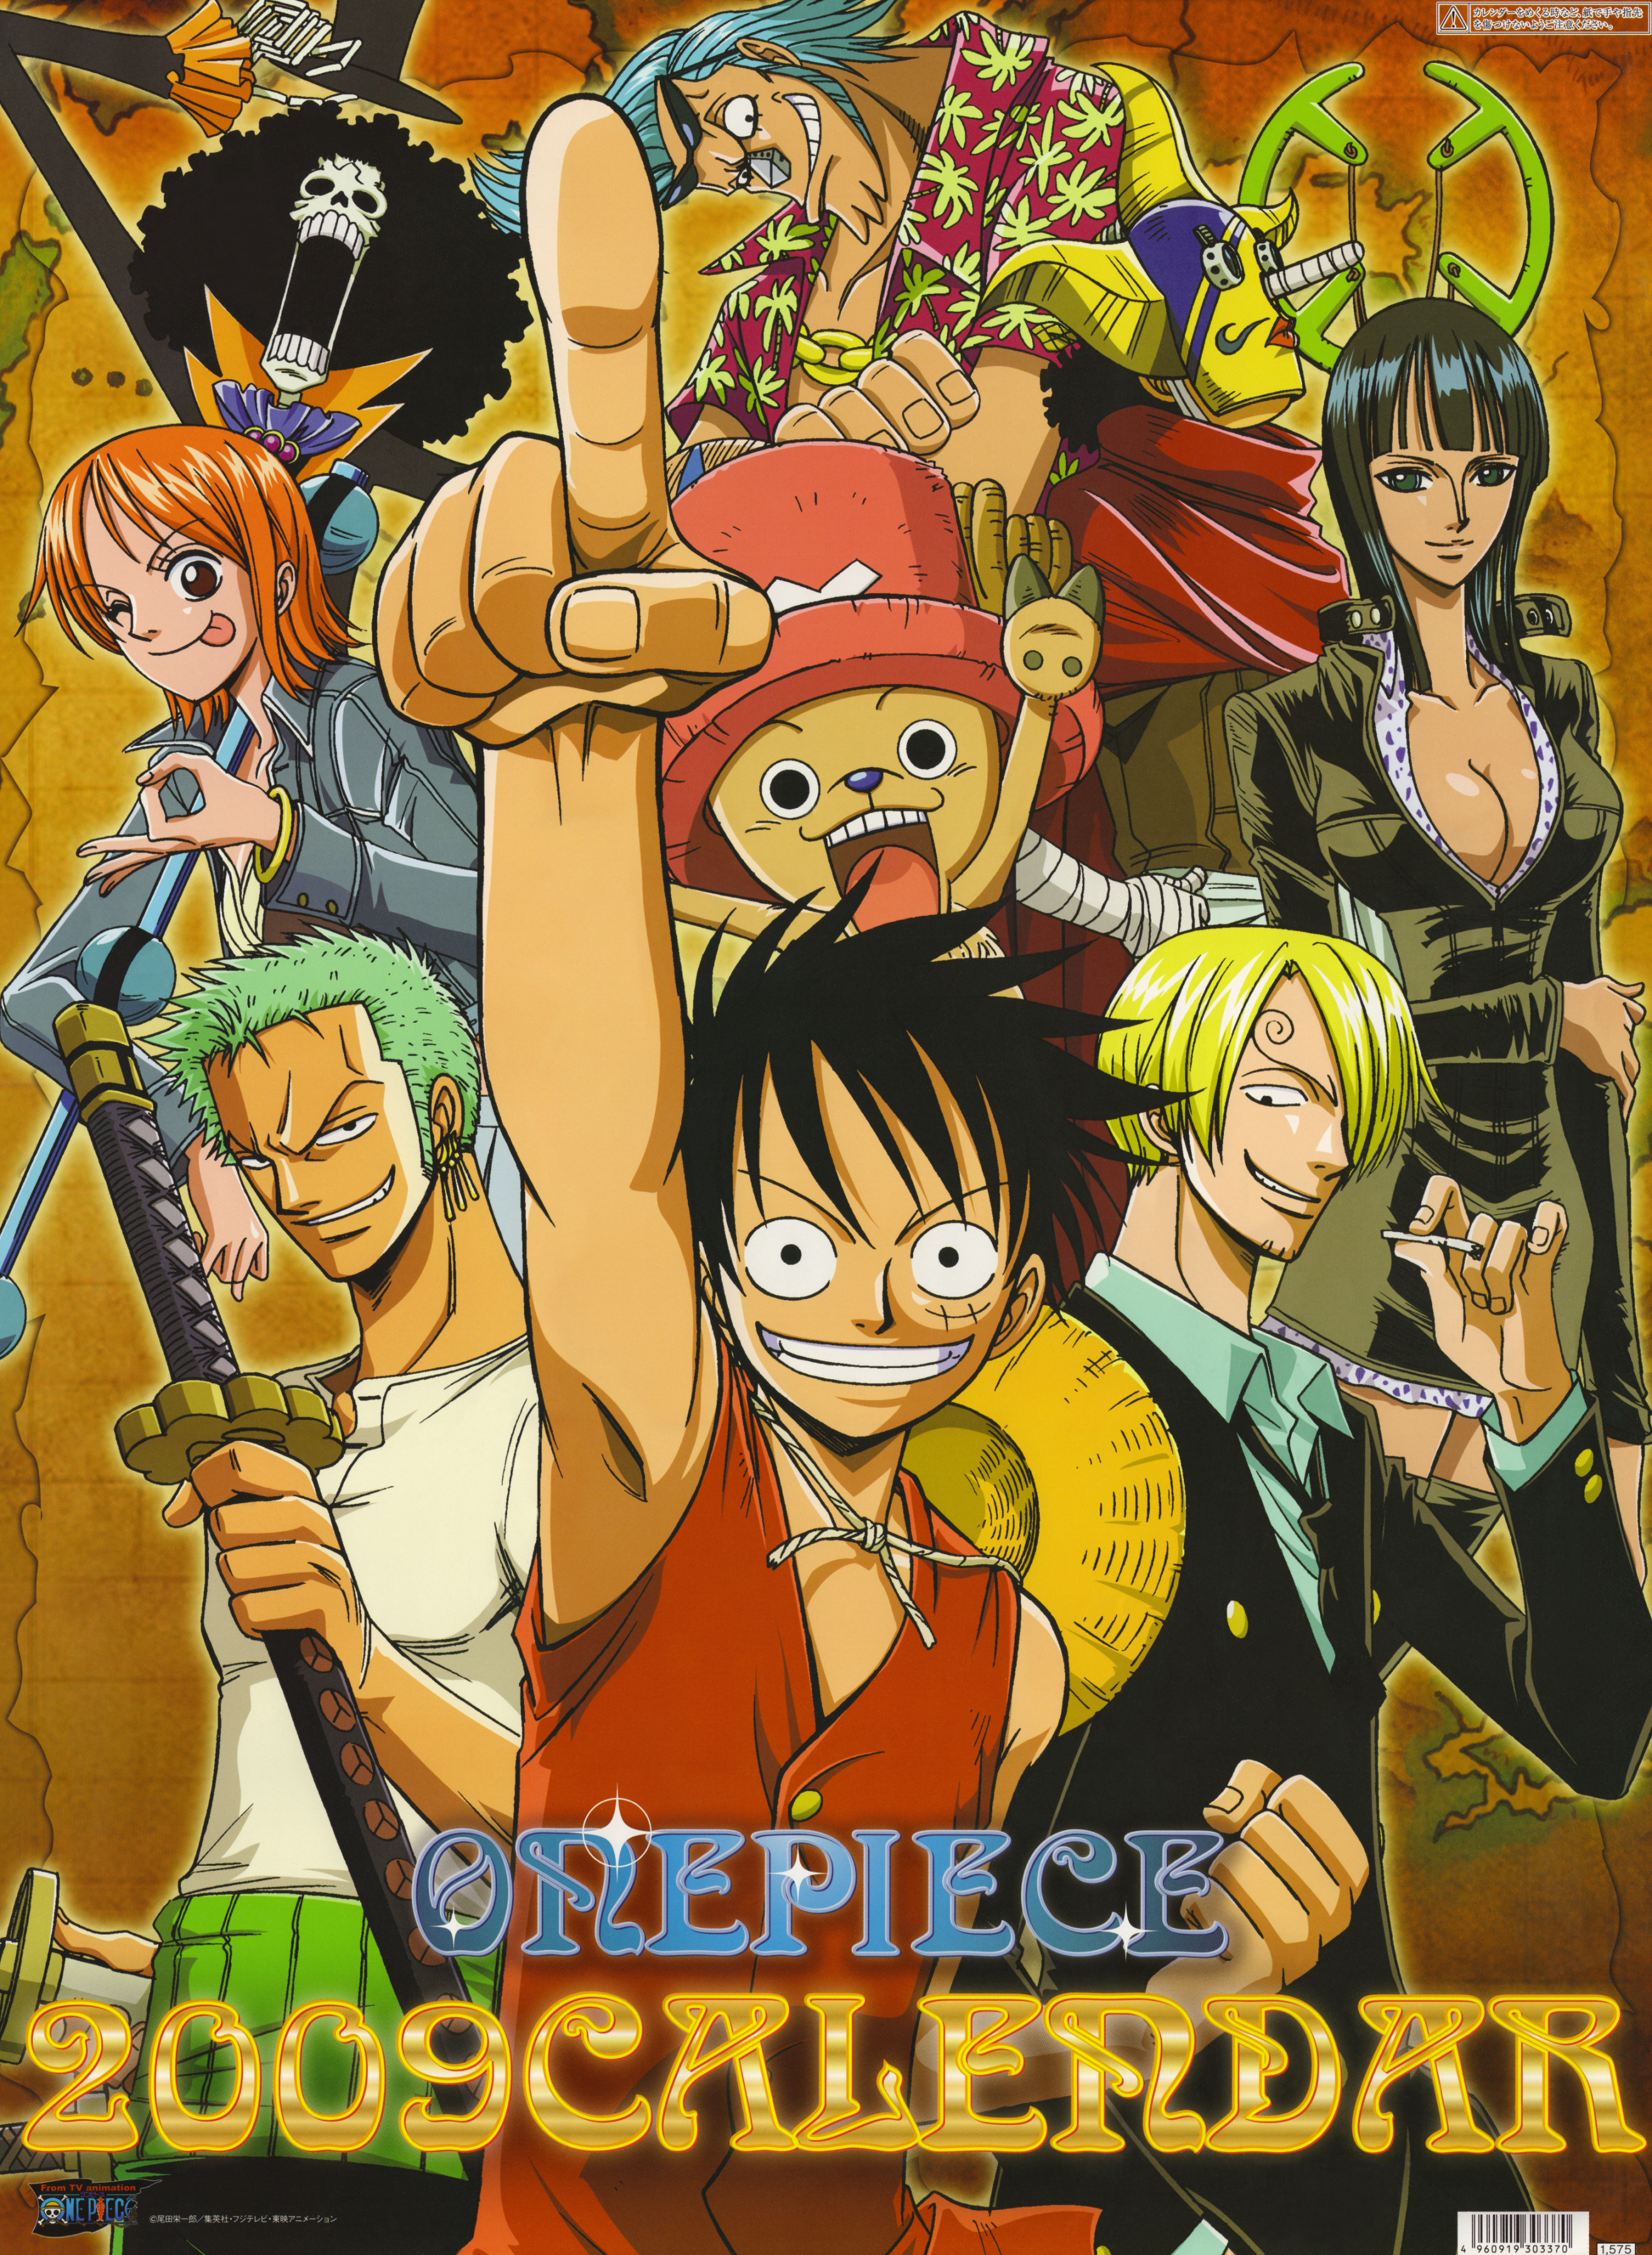 00 One Piece 2009 Calendar Cover